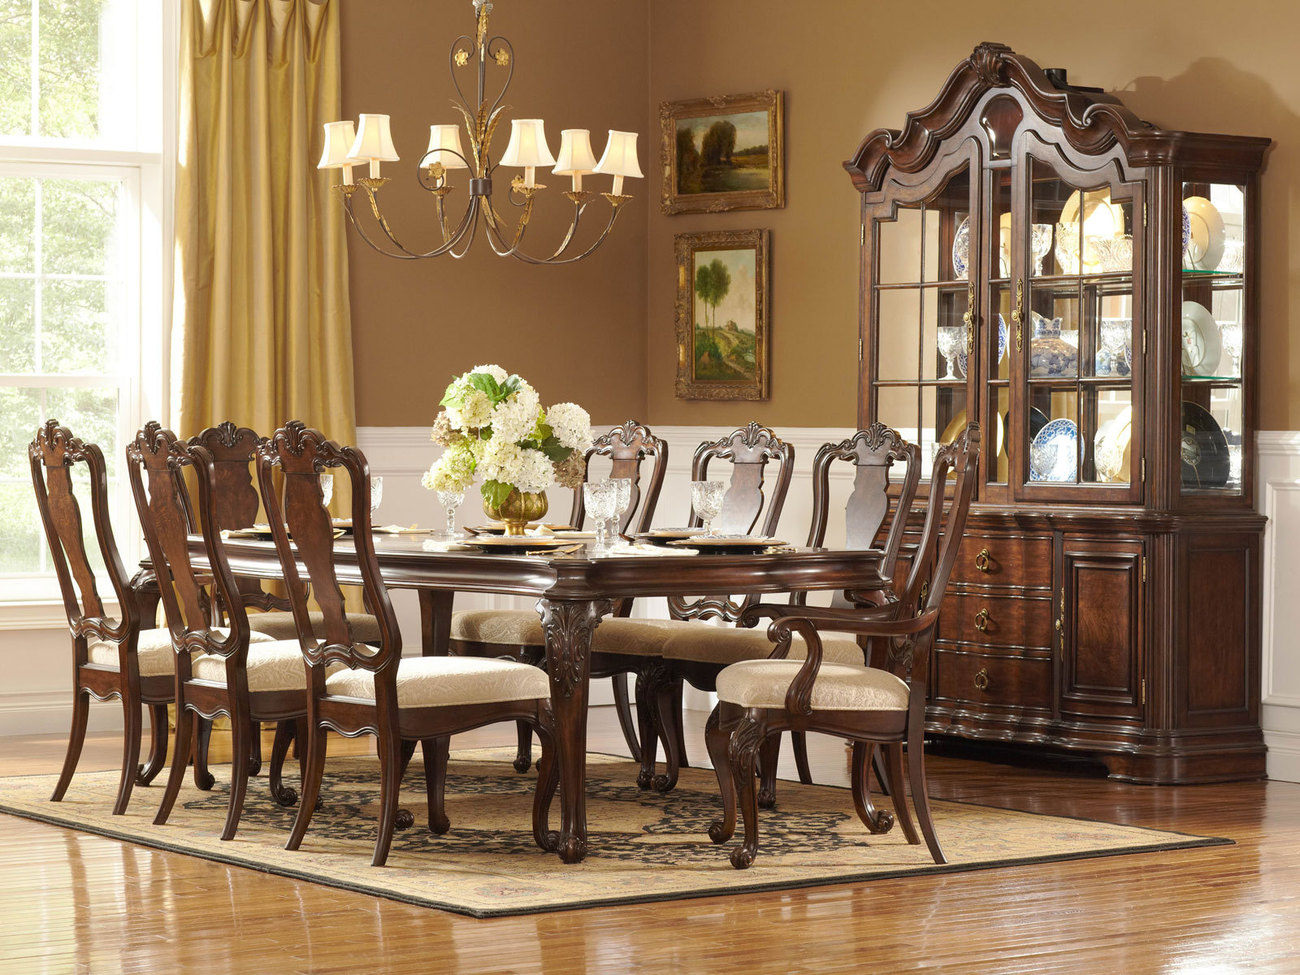 traditional dining room sets Timeless Traditional Dining Room Designs   Interior Vogue traditional dining room sets